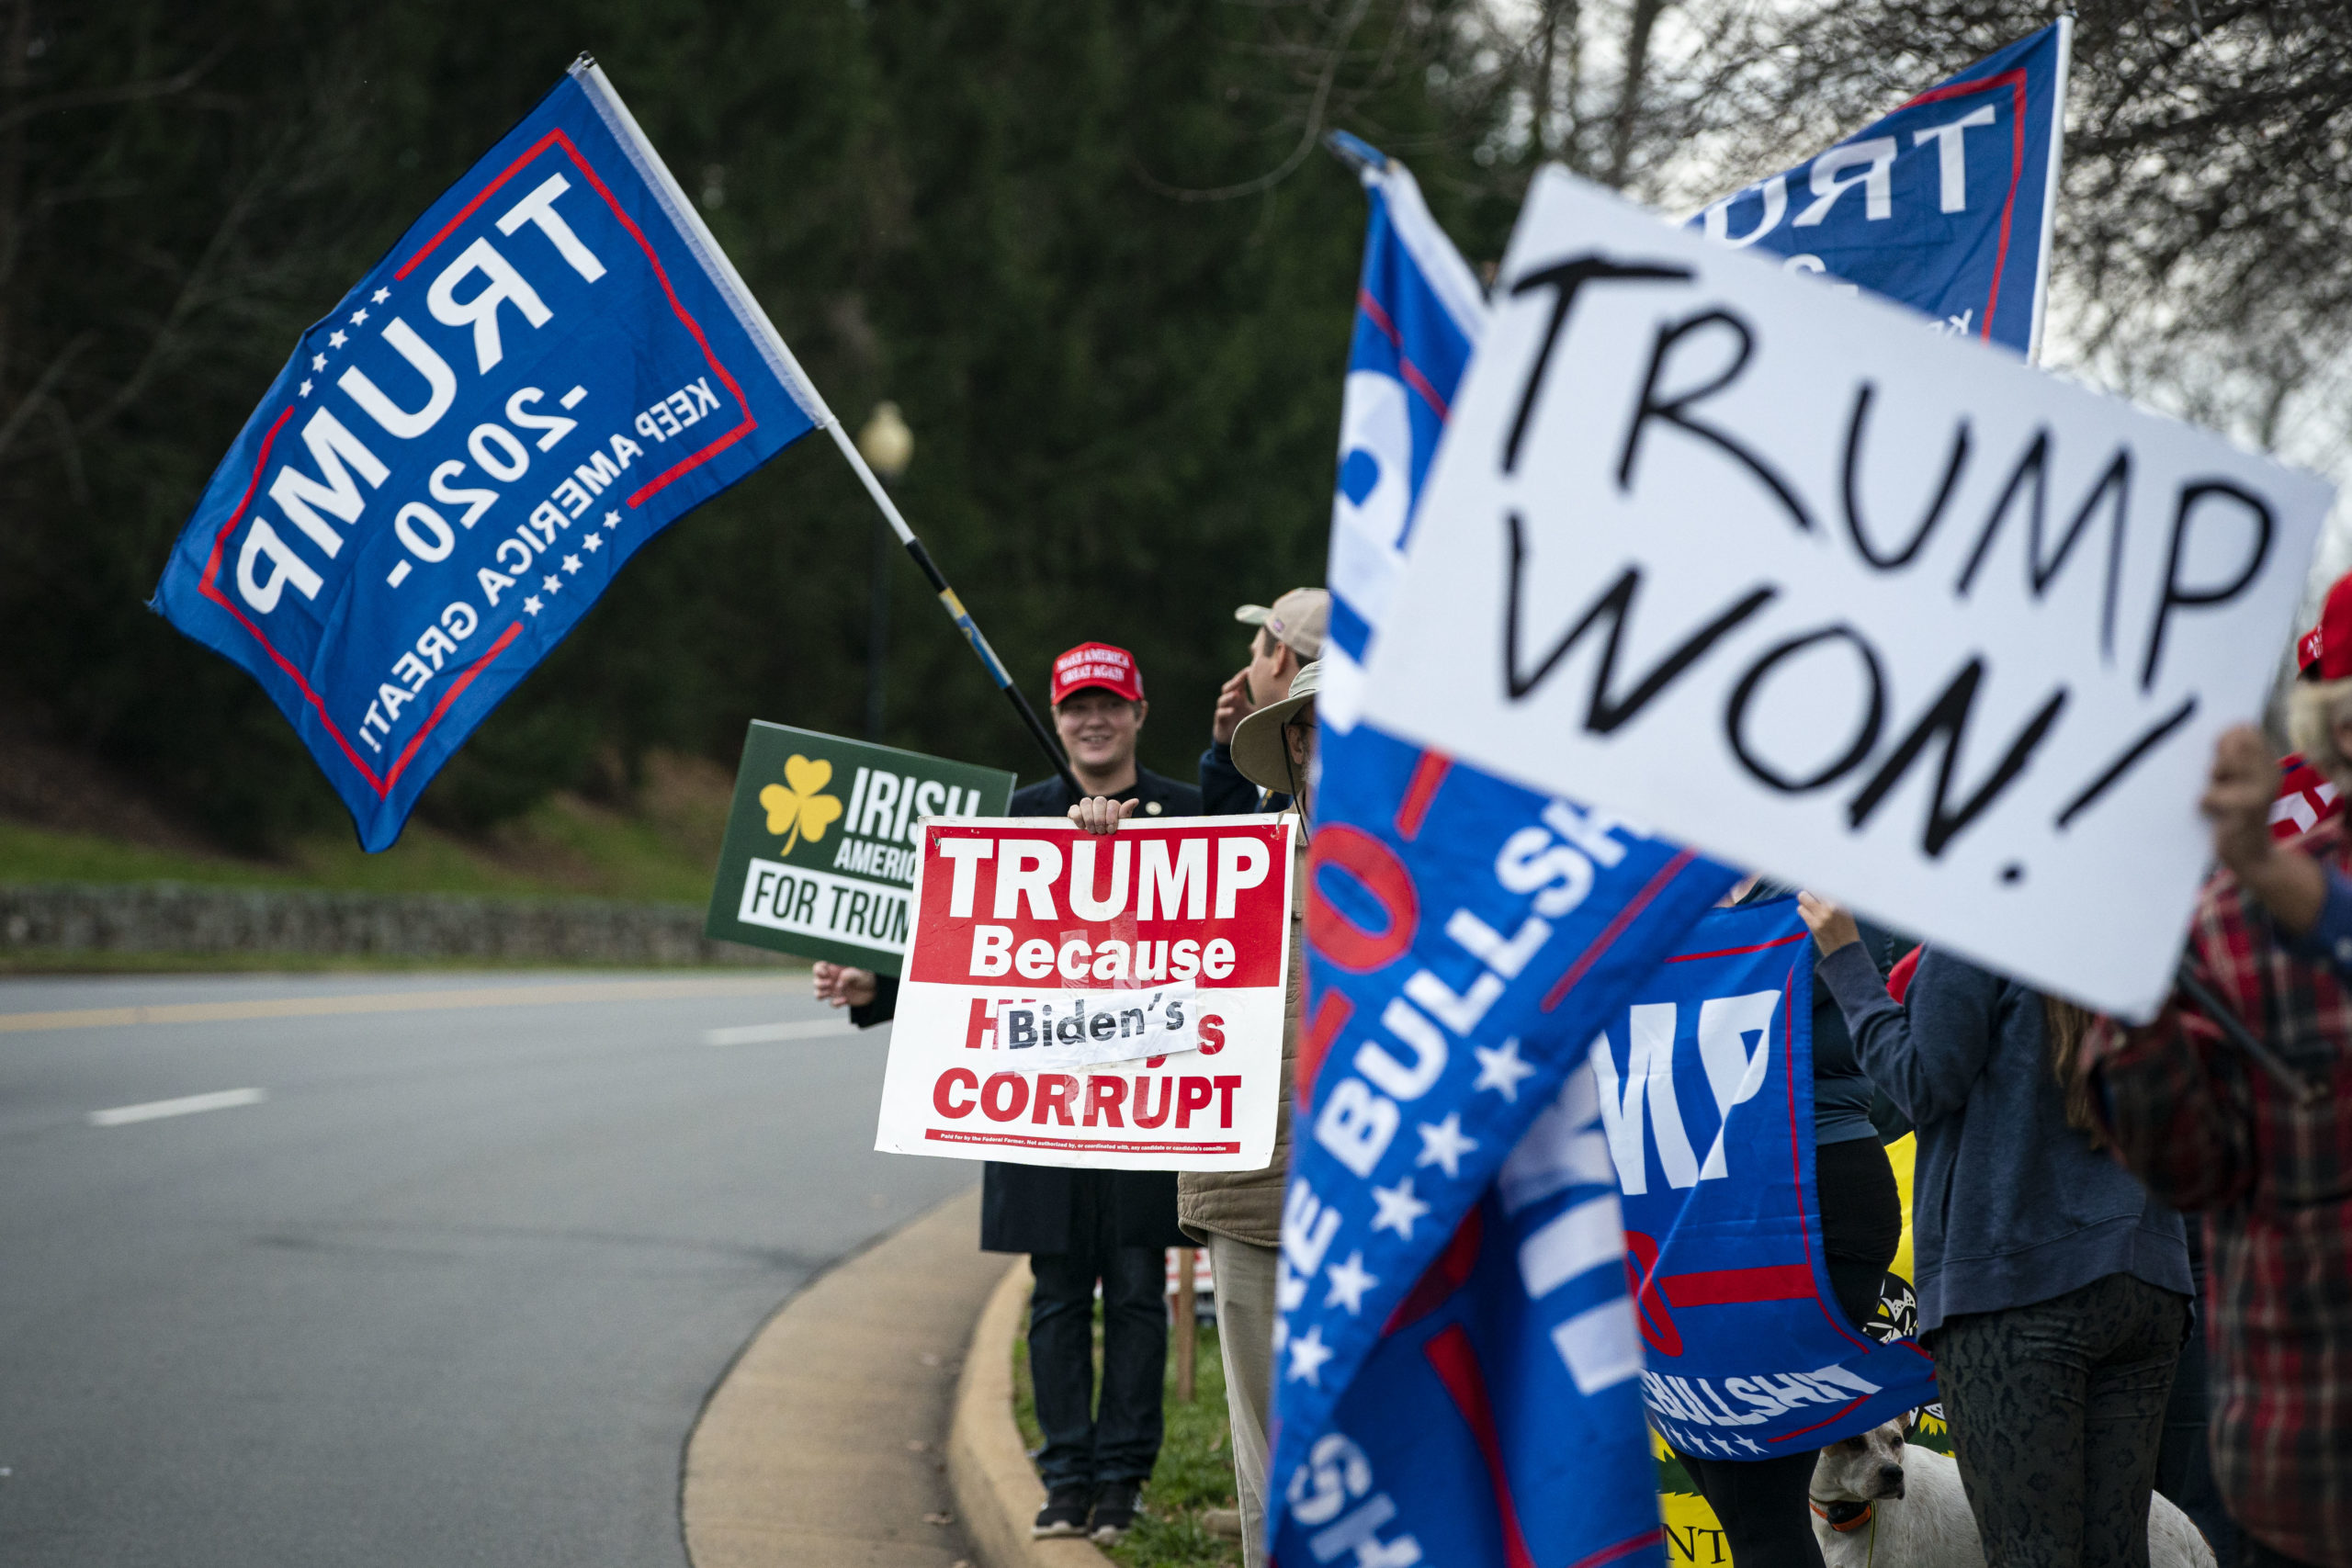 STERLING, VA - DECEMBER 13: Supporters gather outside Trump National Golf Club as U.S. President Donald Trump departs following a round of golf on December 13, 2020 in Sterling, Virginia. (Photo by Al Drago/Getty Images)